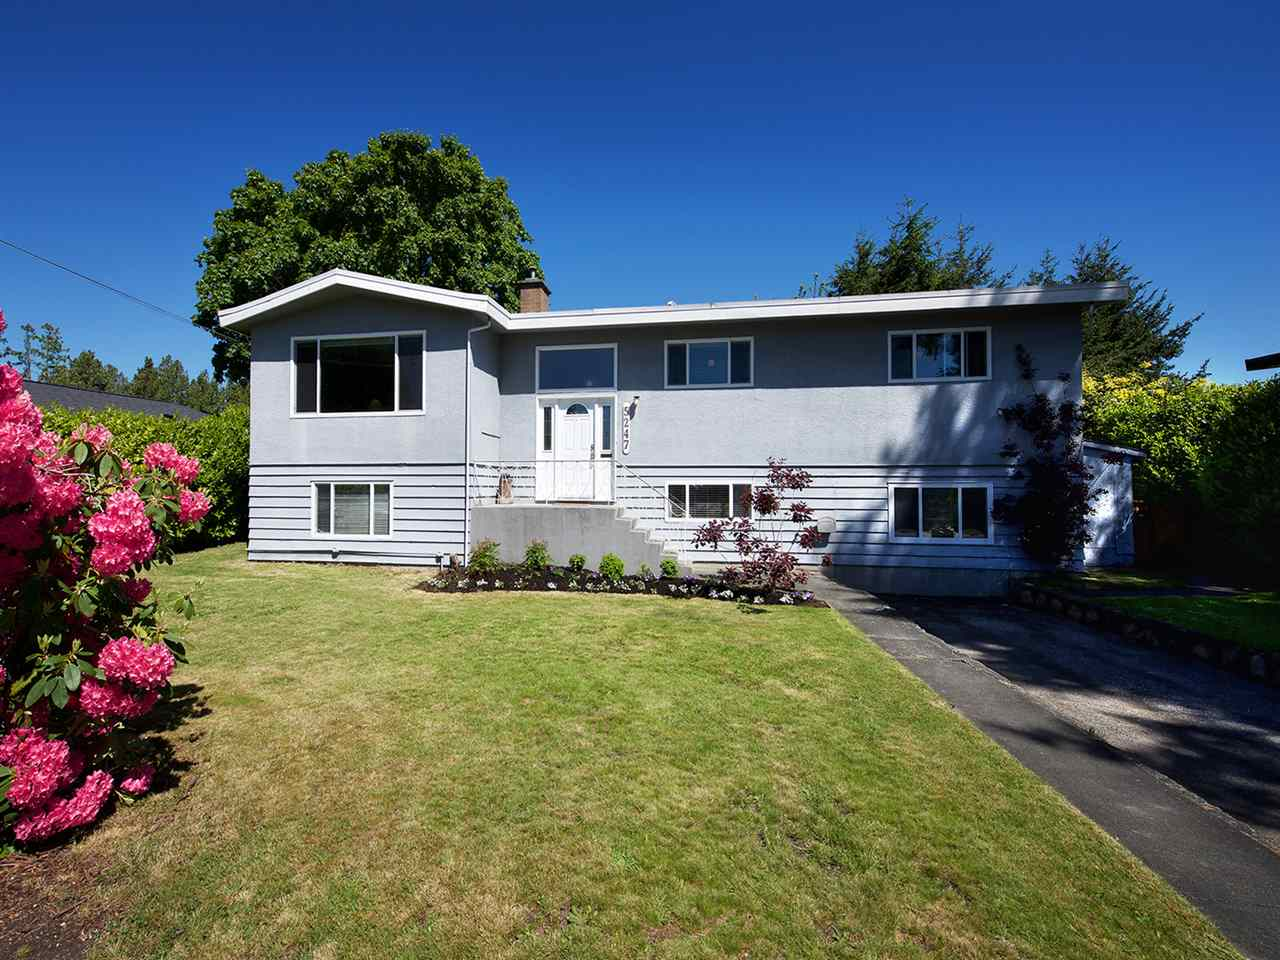 Main Photo: 5247 10A AVENUE in Delta: Tsawwassen Central House for sale (Tsawwassen)  : MLS® # R2169273